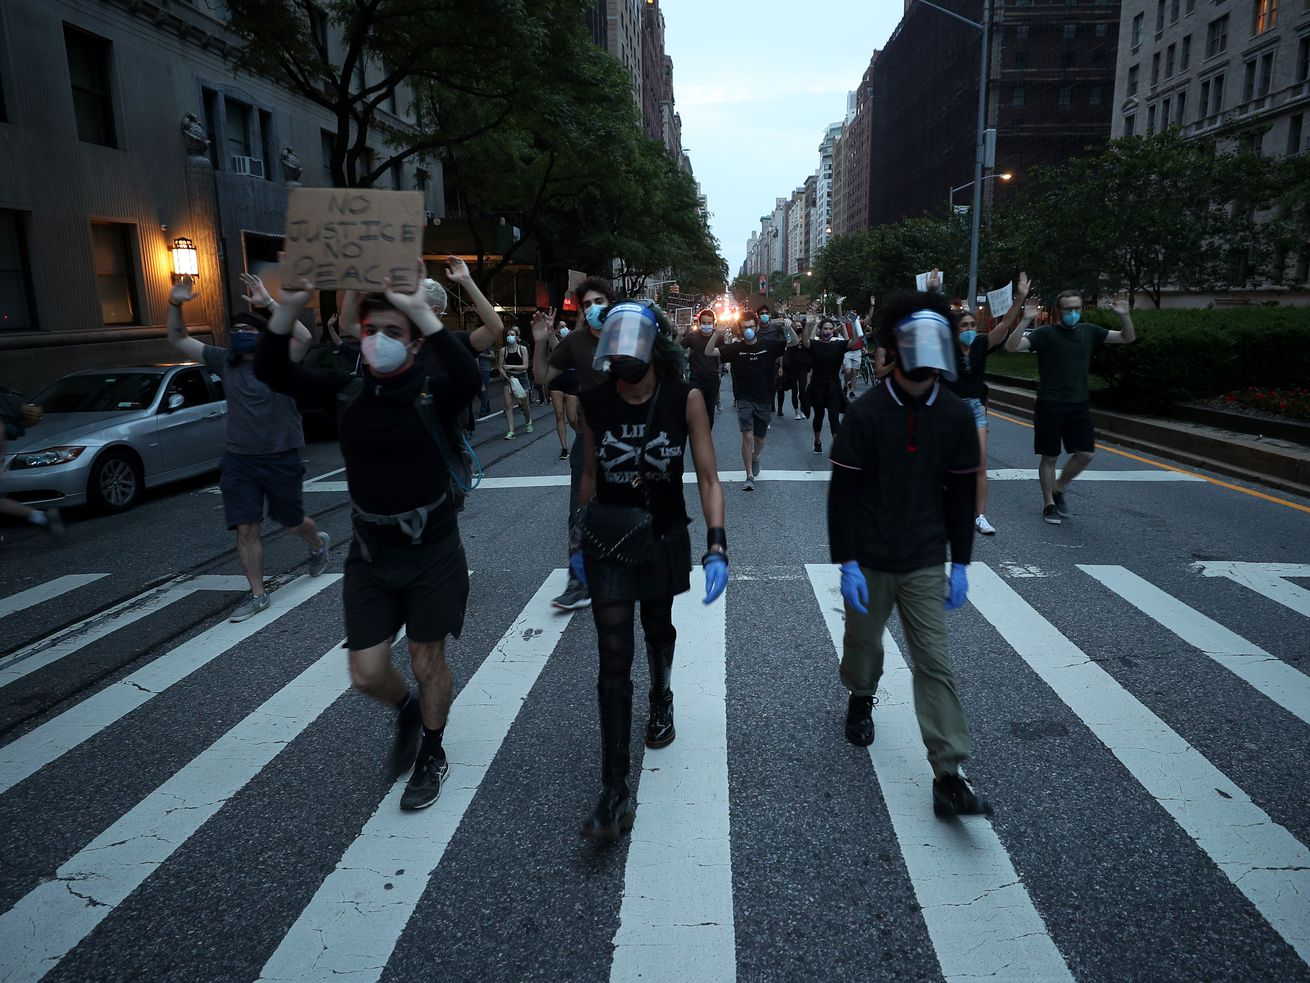 Protesters walk down a New York City street.